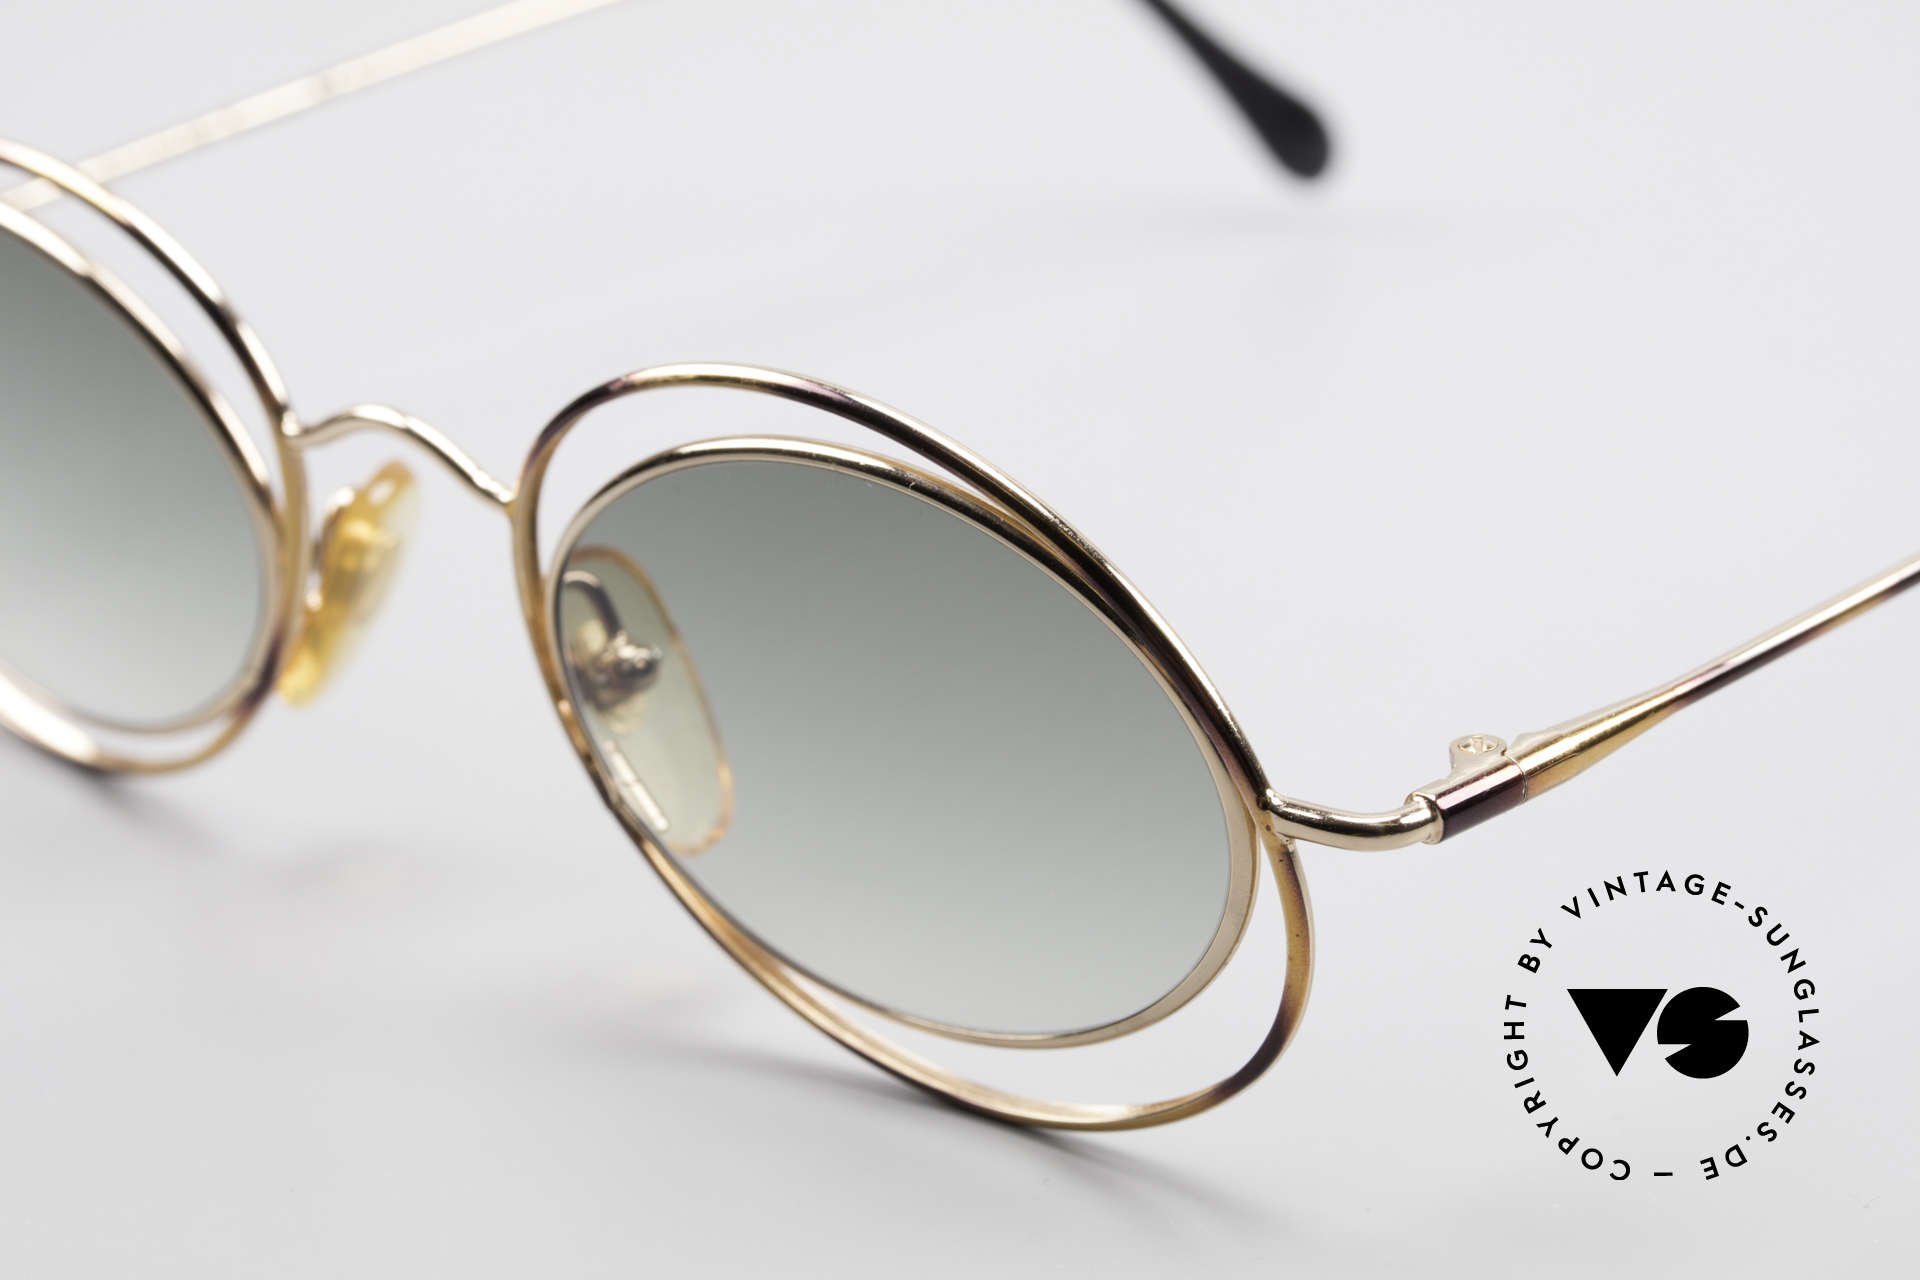 Casanova LC16 Enchanting Ladies Sunglasses, a true rarity & collector's item (belongs in a museum), Made for Women